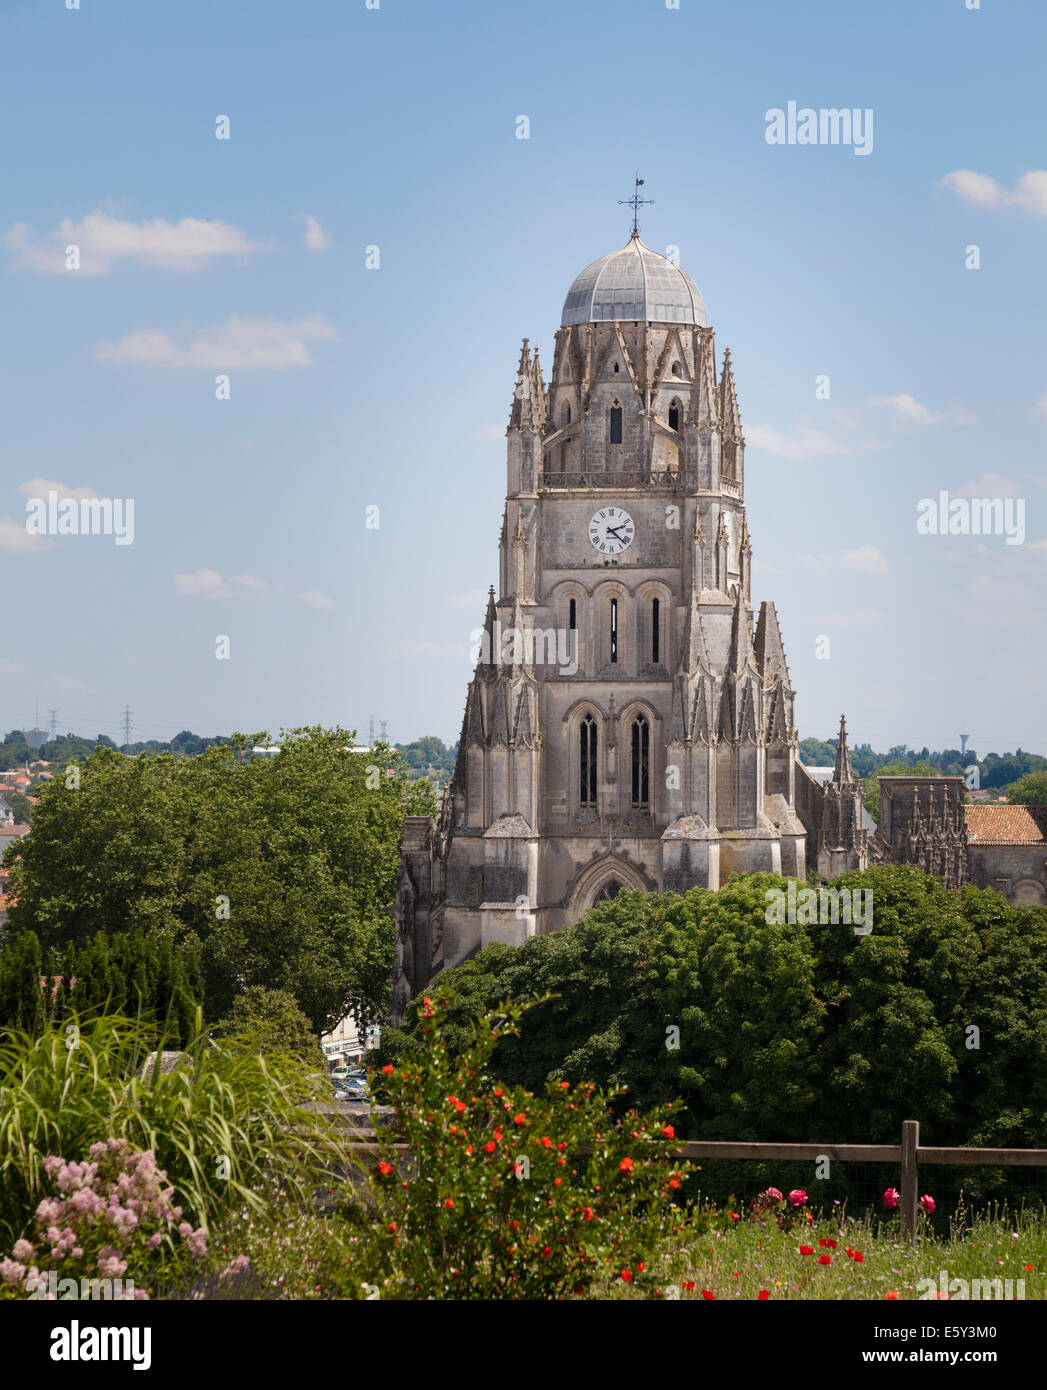 The Cathedral St Peter at Saintes seen over the roof tops. - Stock Image